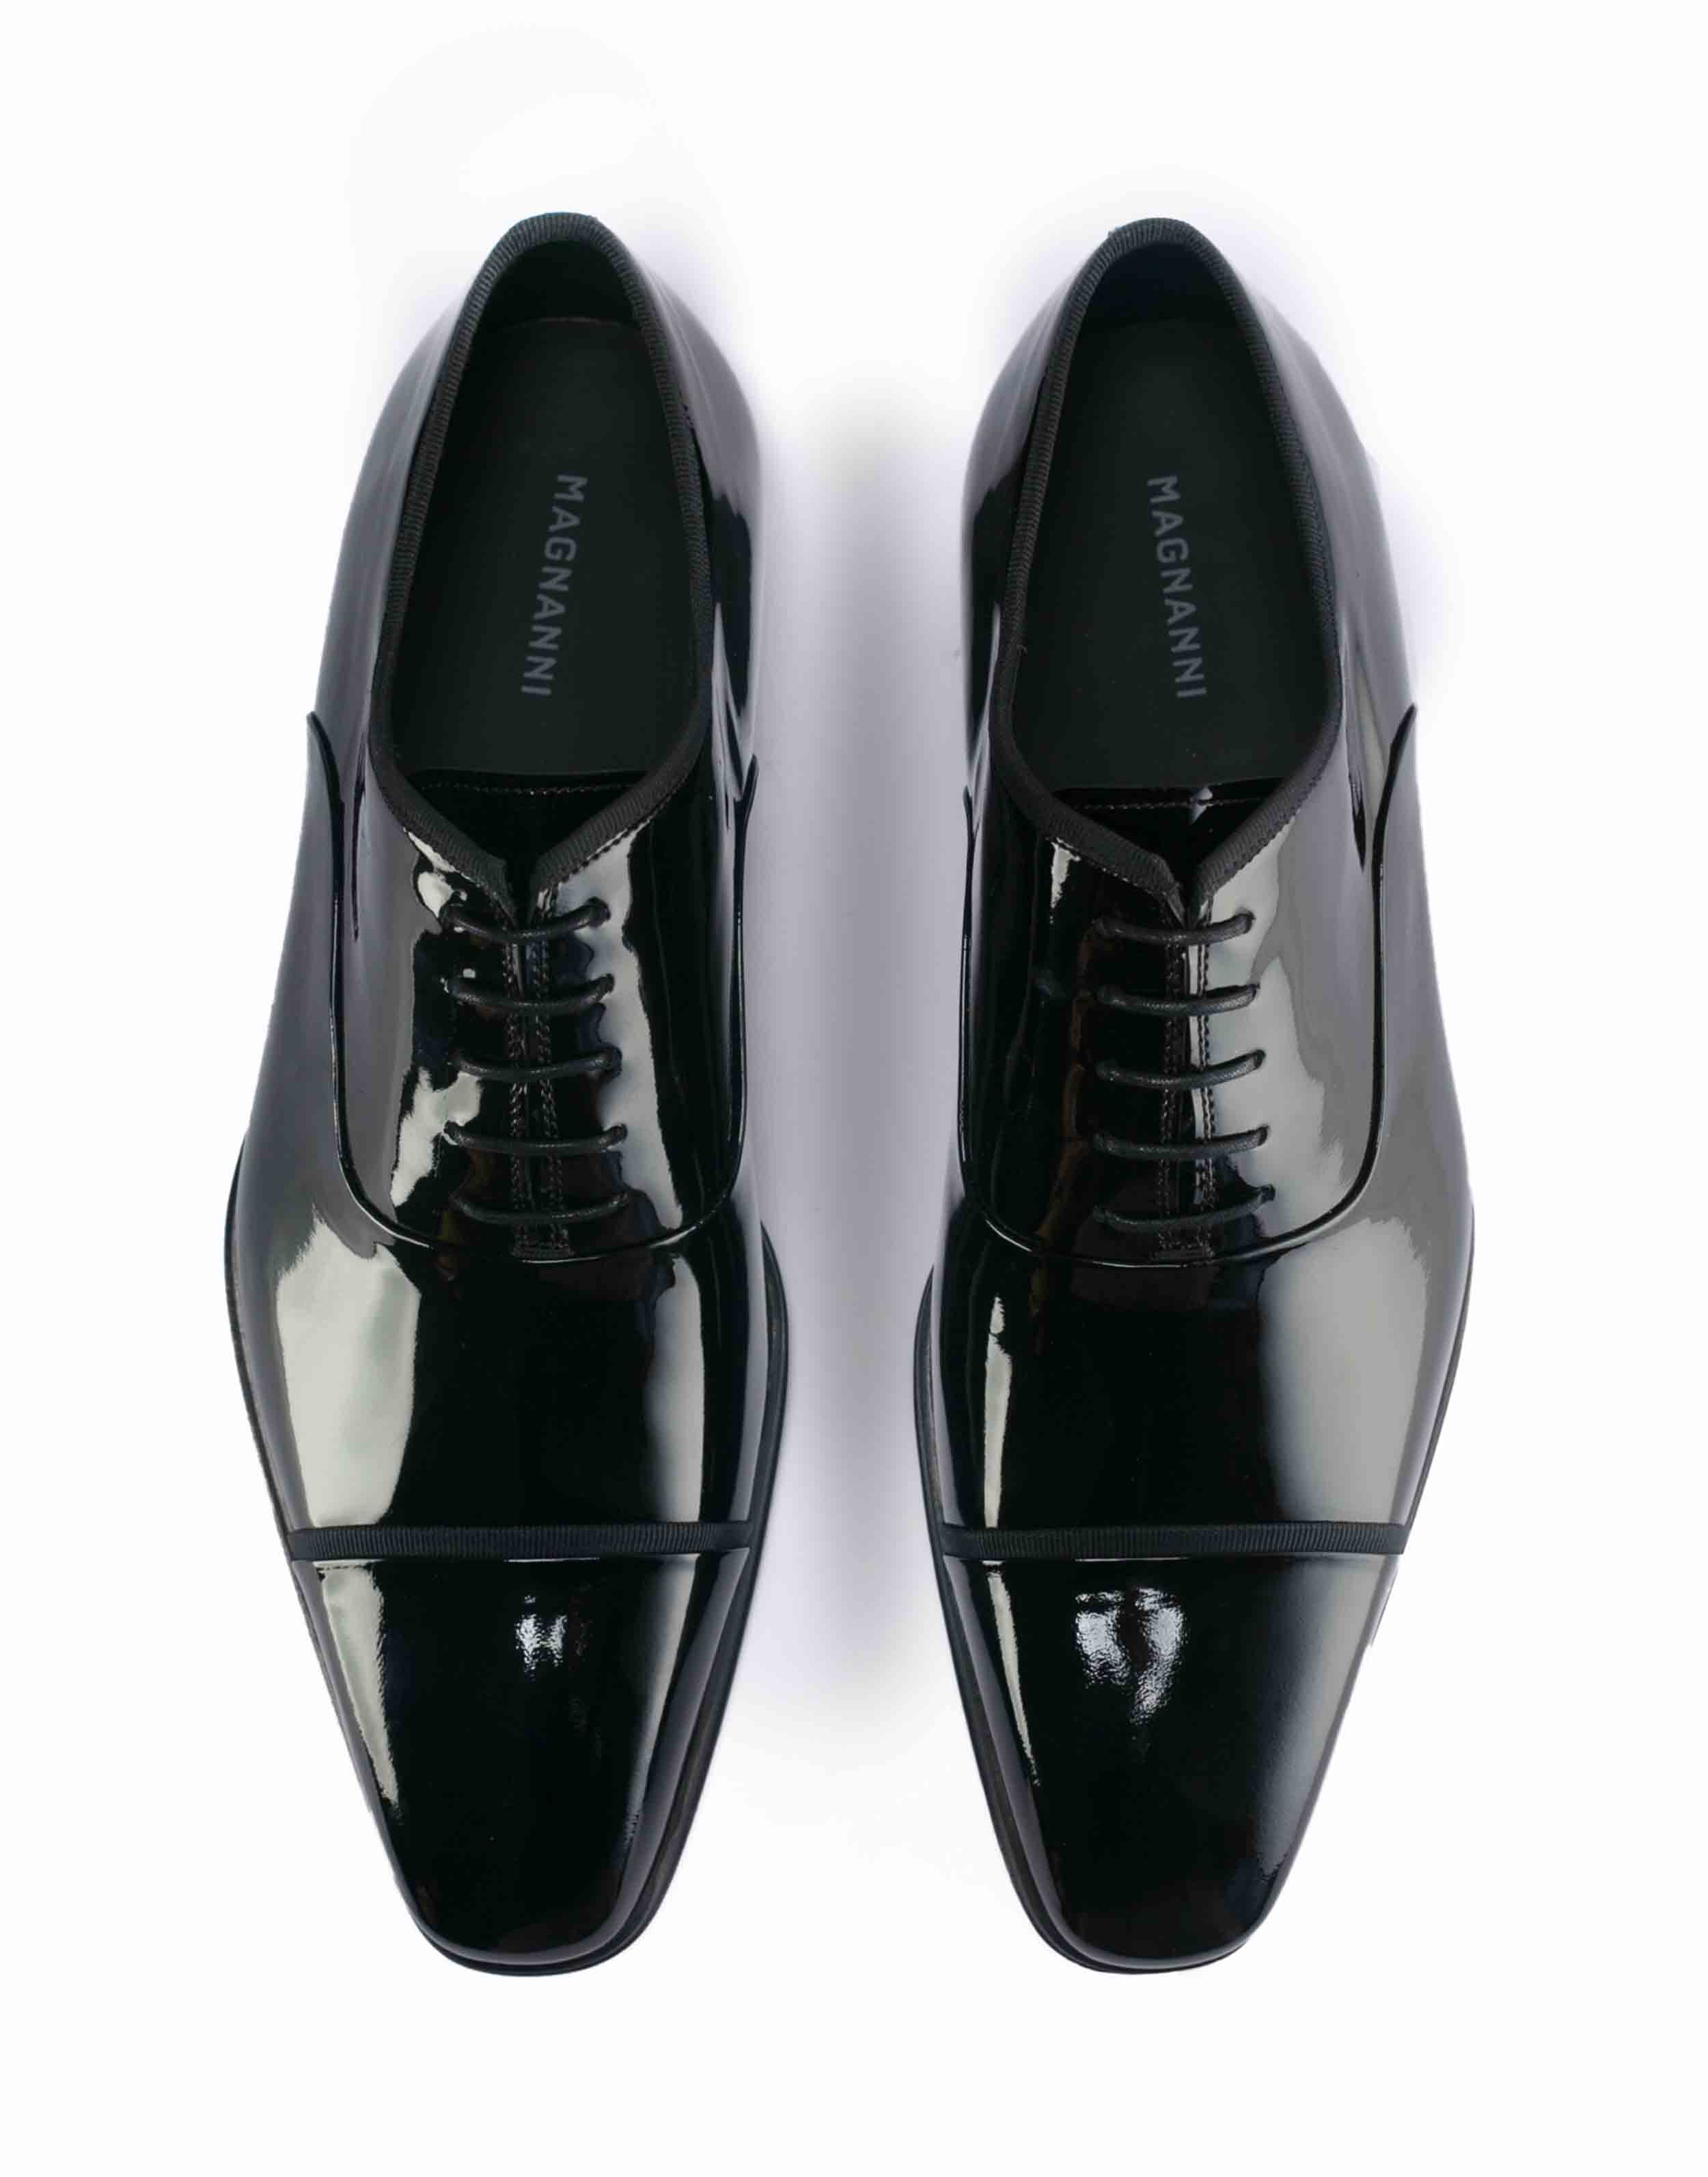 BLACK PATENT LEATHER LACE UP OXFORDS4